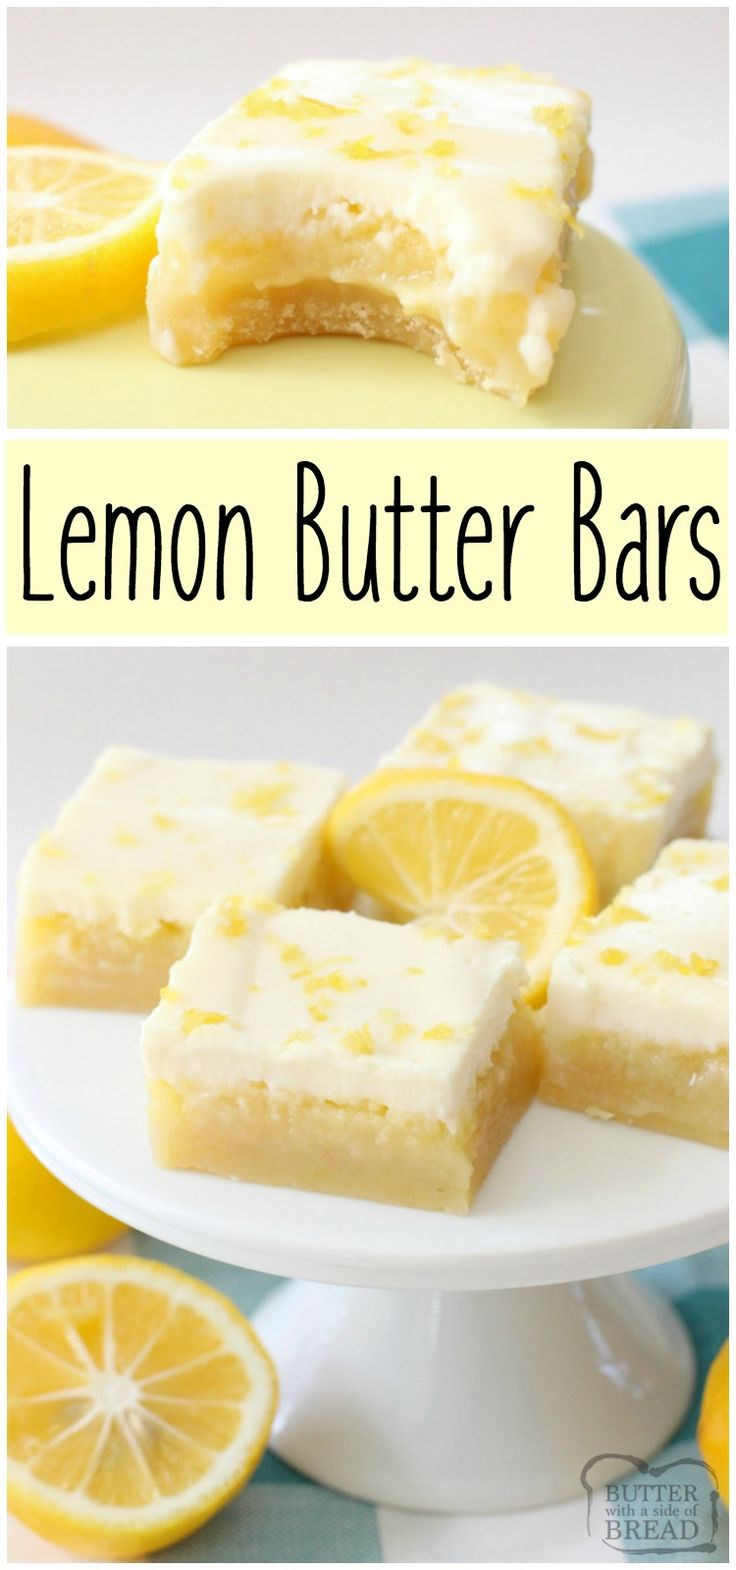 Triple layer lemon bars that are easy to make and have a lovely, bright lemon flavor. Wonderful dessert recipe for Lemon Butter Bars from Butter With A Side of Bread